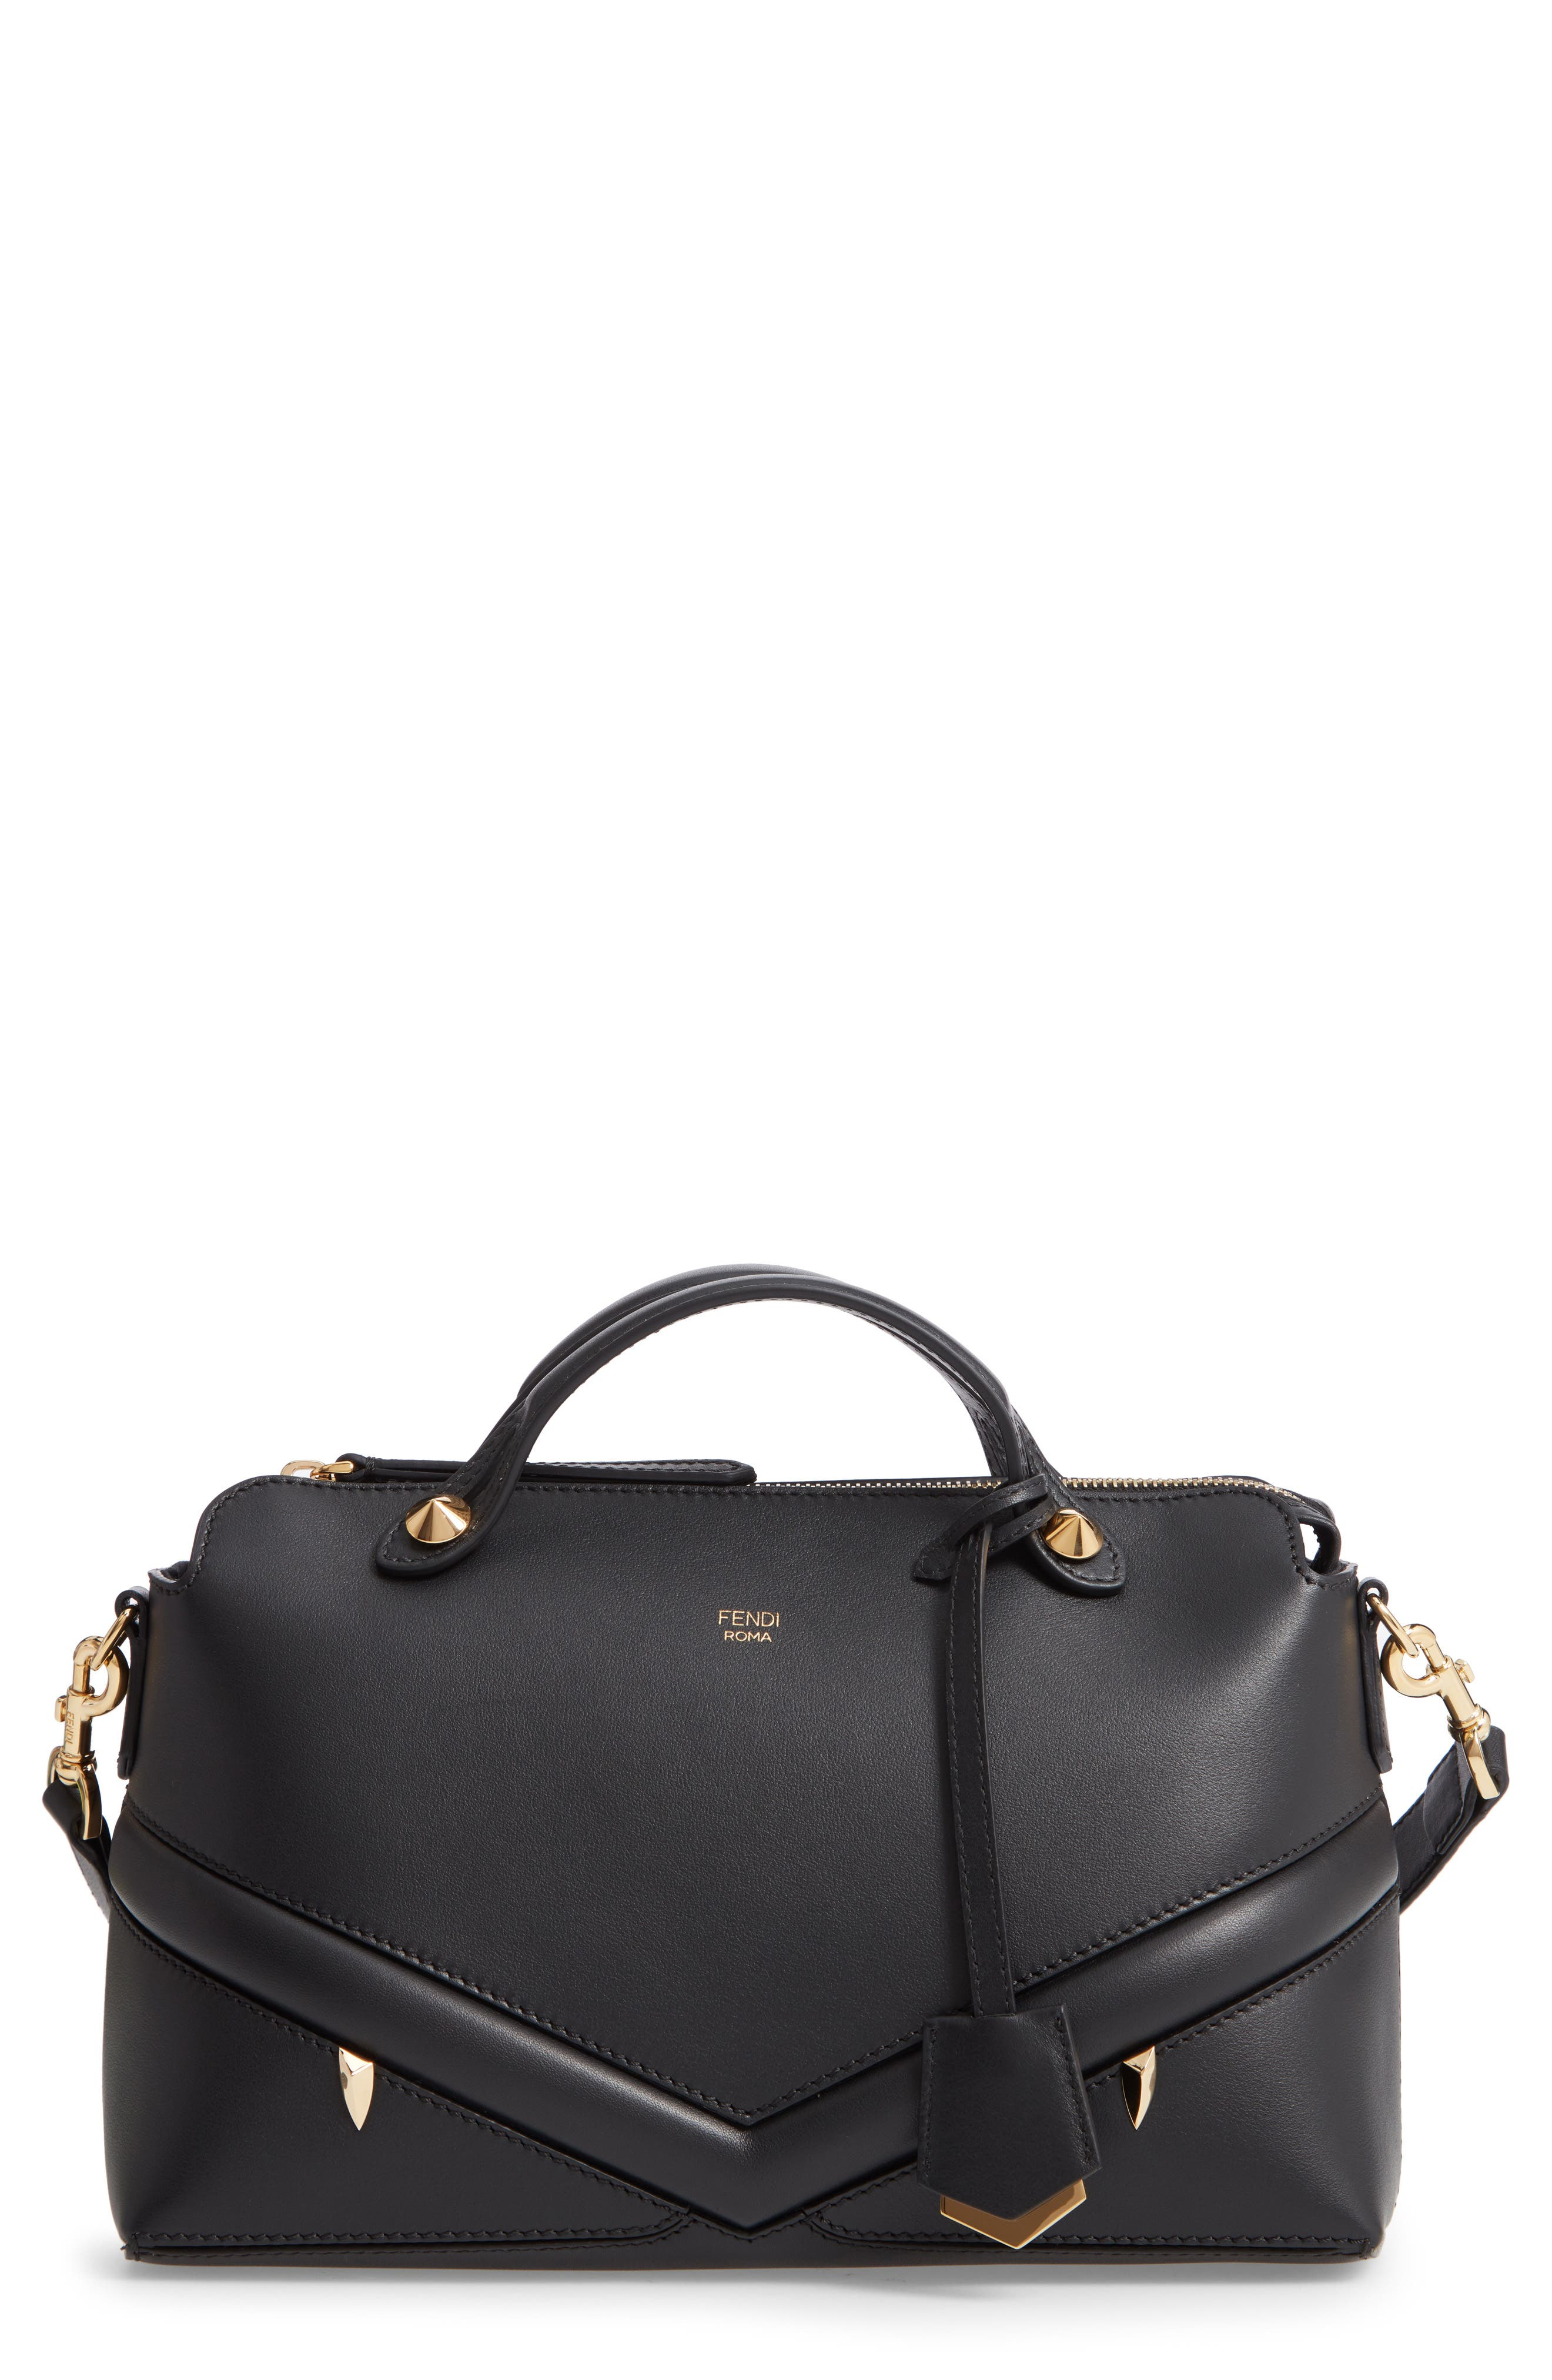 By the Way - Wonders Convertible Leather Shoulder Bag,                             Main thumbnail 1, color,                             NERO/ ORO SOFT